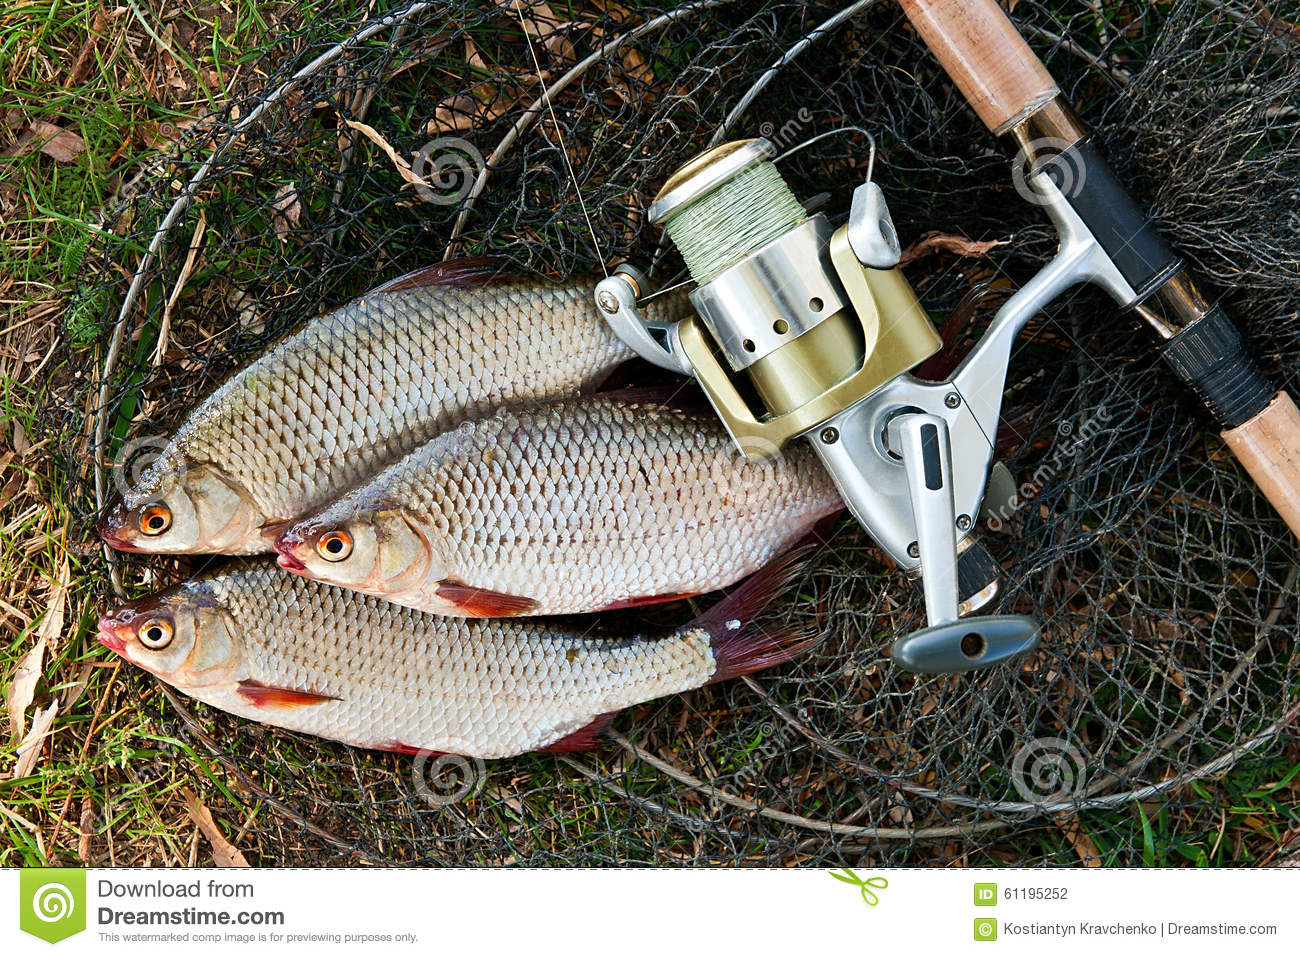 Freshwater fish bait - Catching Freshwater Fish And Fishing Rods With Fishing Reel Stock Reel Combo